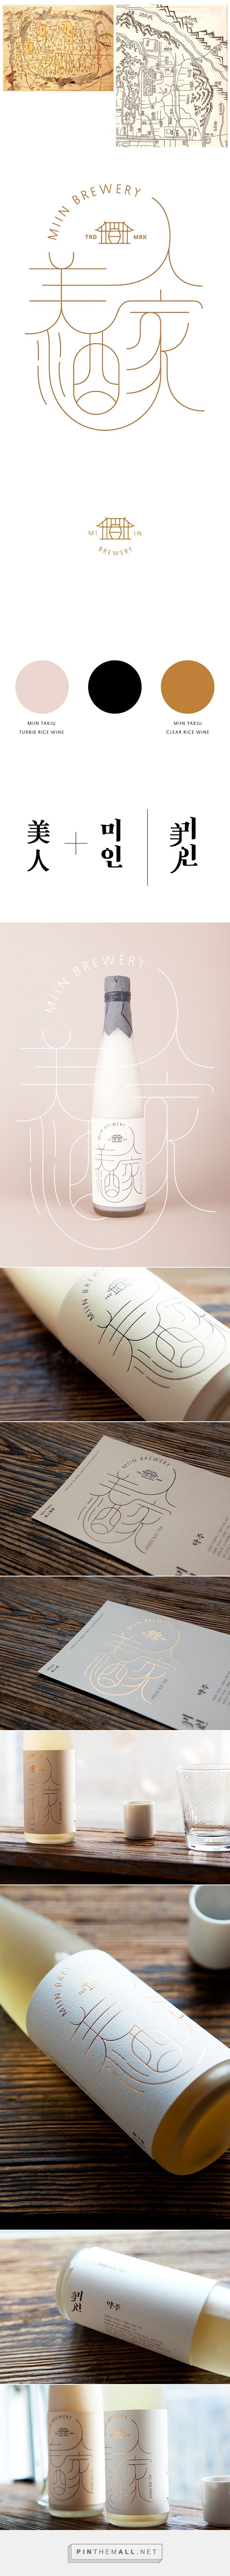 Miin Brewery on Behance by ContentFormContext curated by Packaging Diva PD sure is pretty packaging.